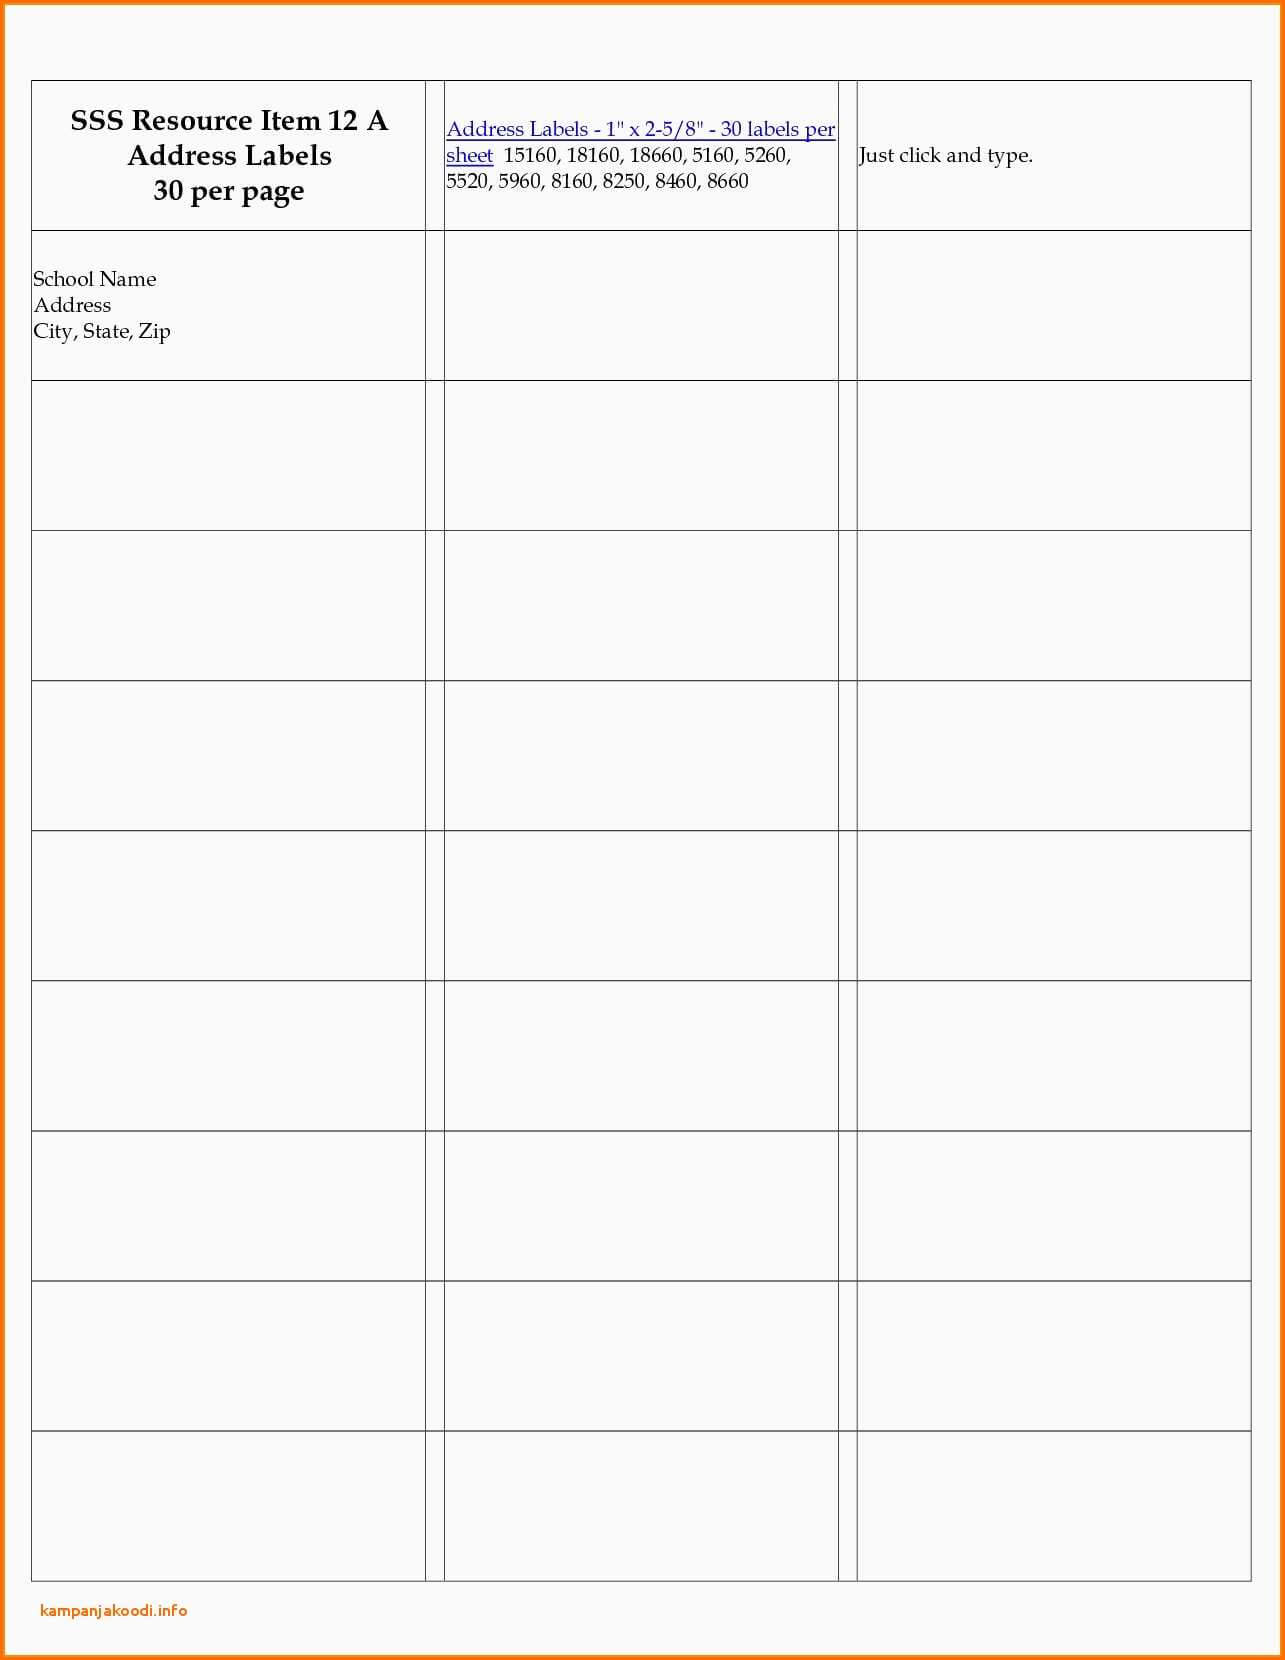 8 Labels Per Sheet Template Word - Atlantaauctionco with regard to Word Label Template 8 Per Sheet